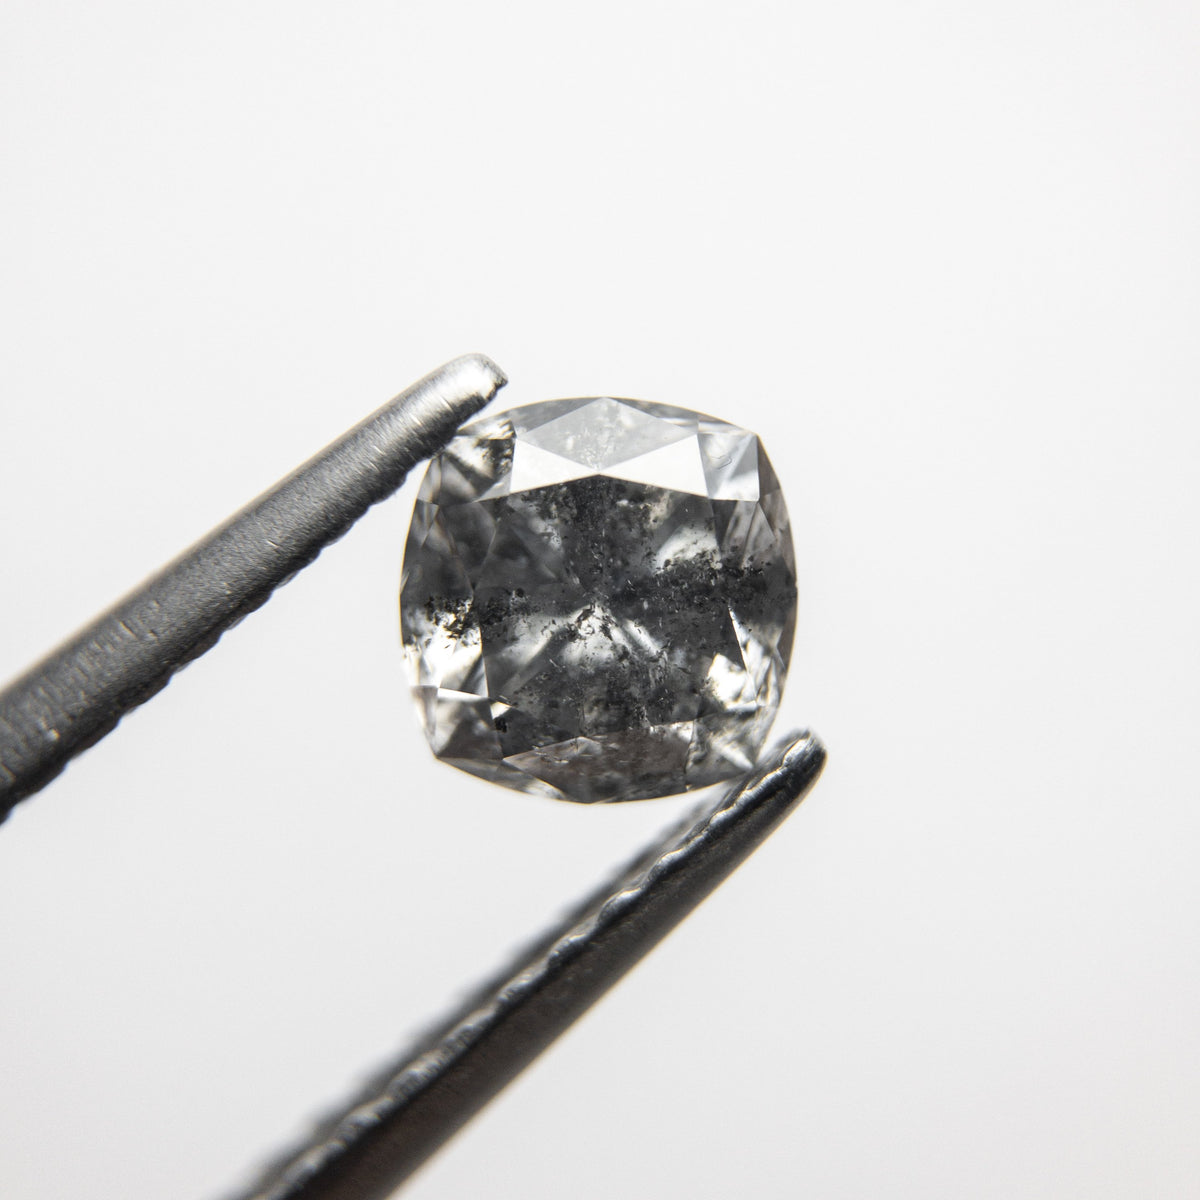 0.72ct 5.33x5.24x3.53mm Cushion Brilliant Cut 18316-05